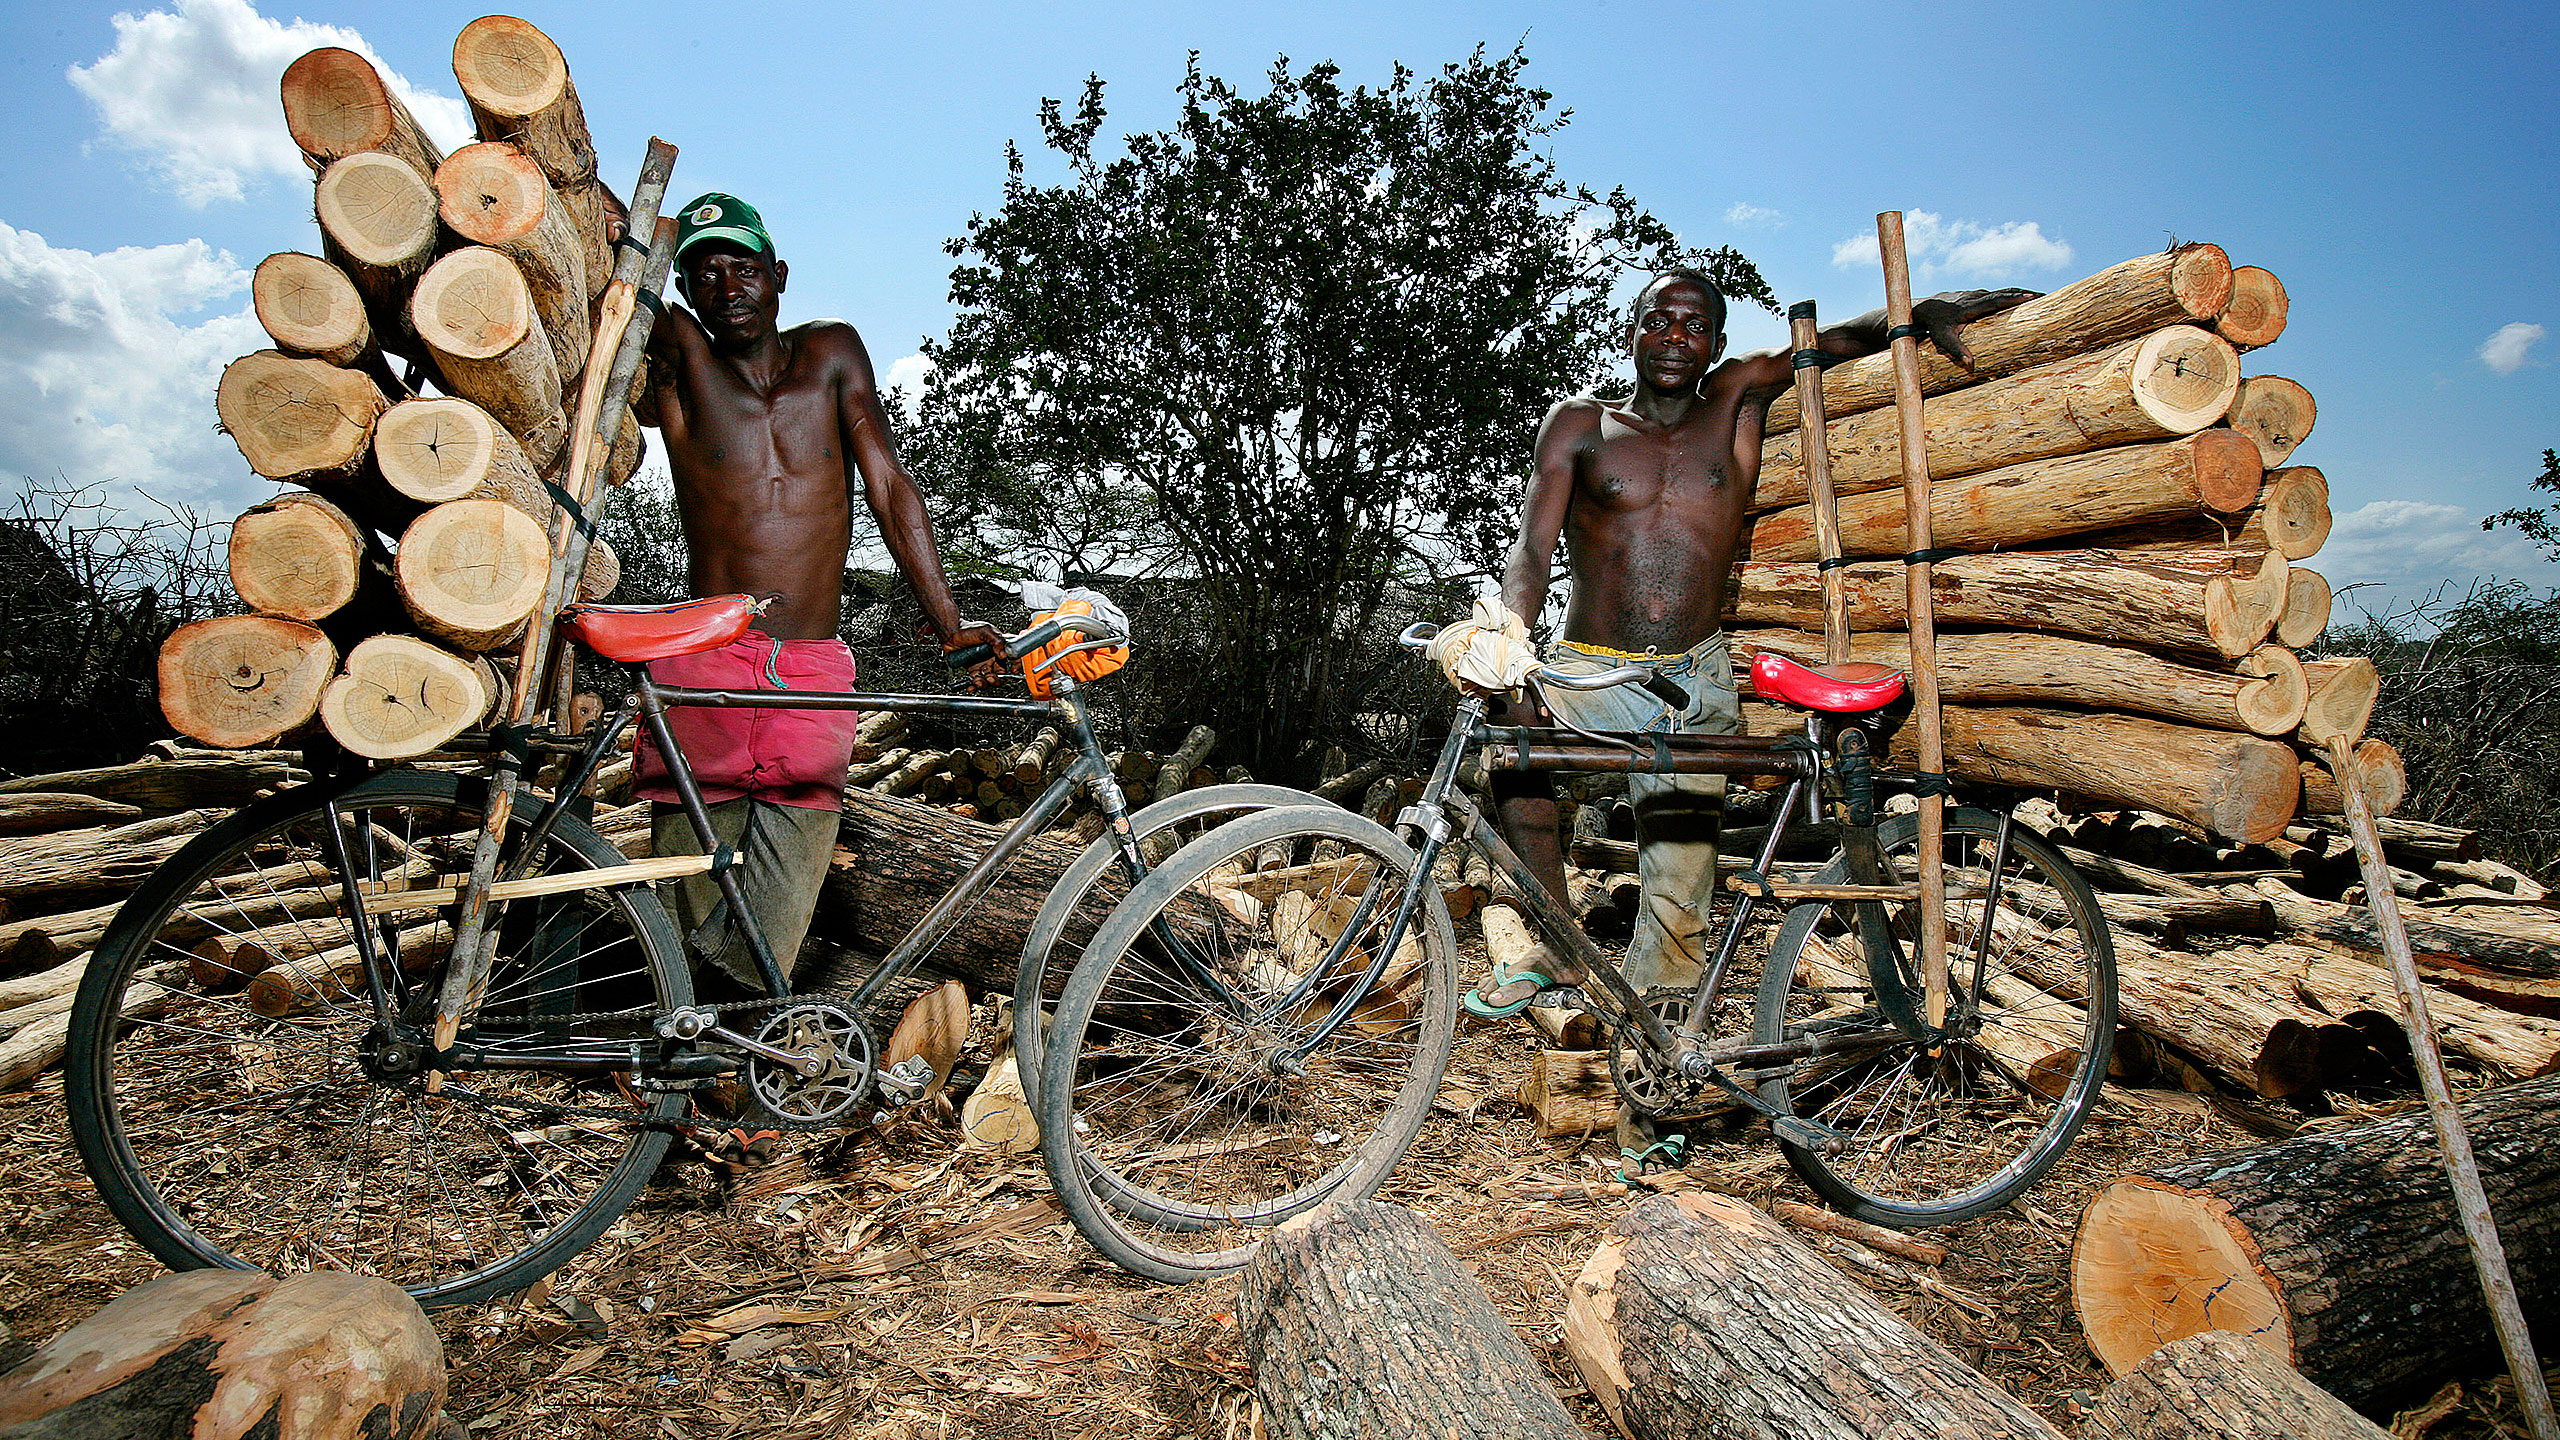 Brent Stirton / Getty Images